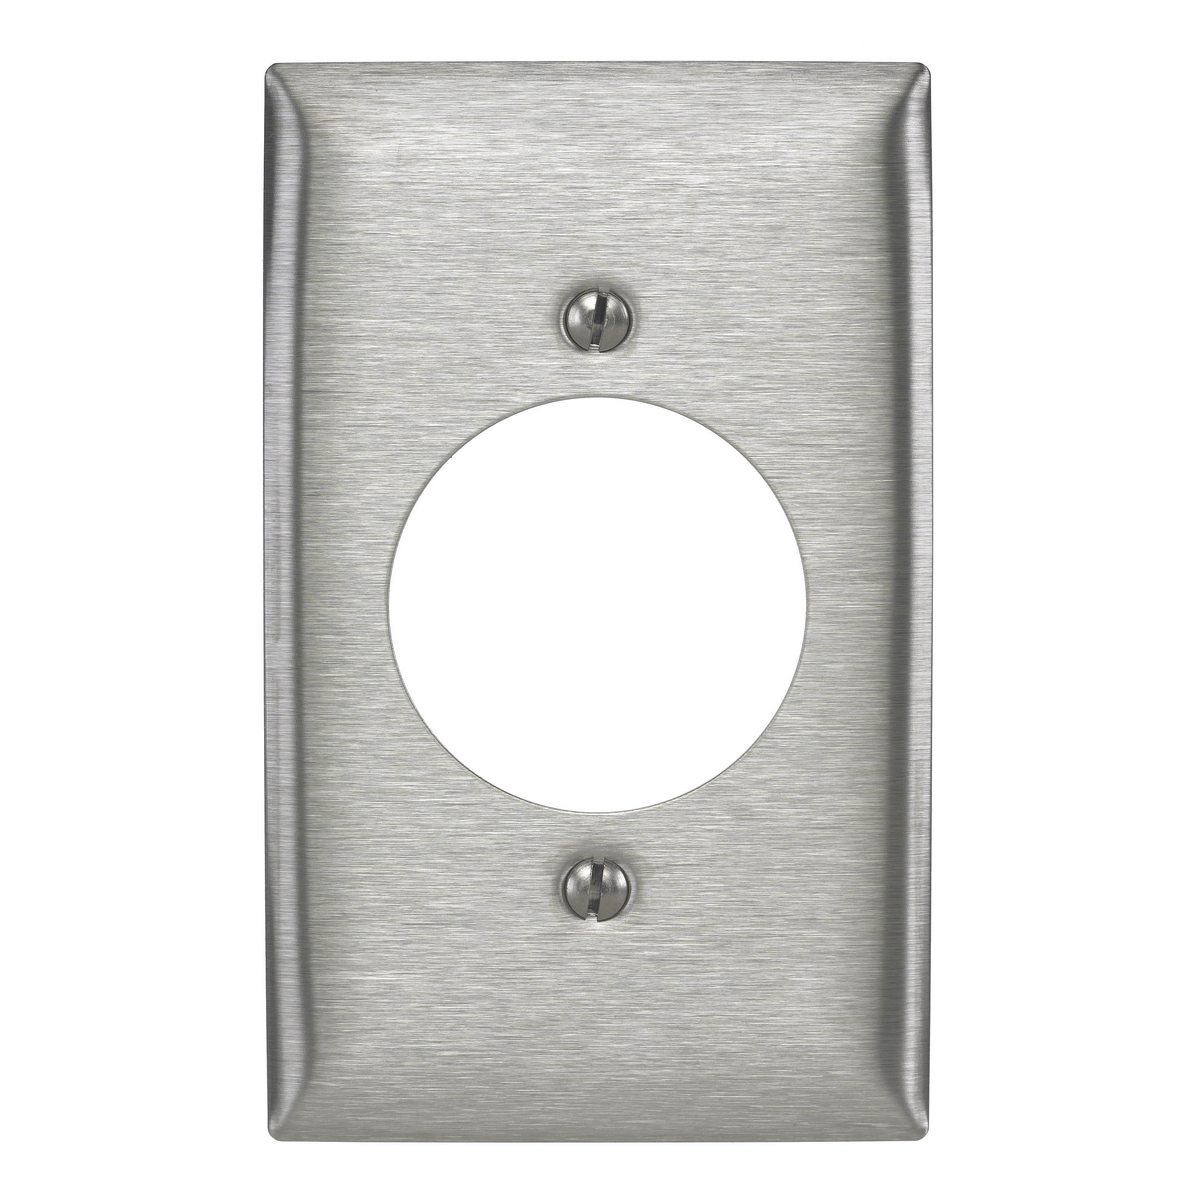 Hubbell SS725 Receptacle Wallplate